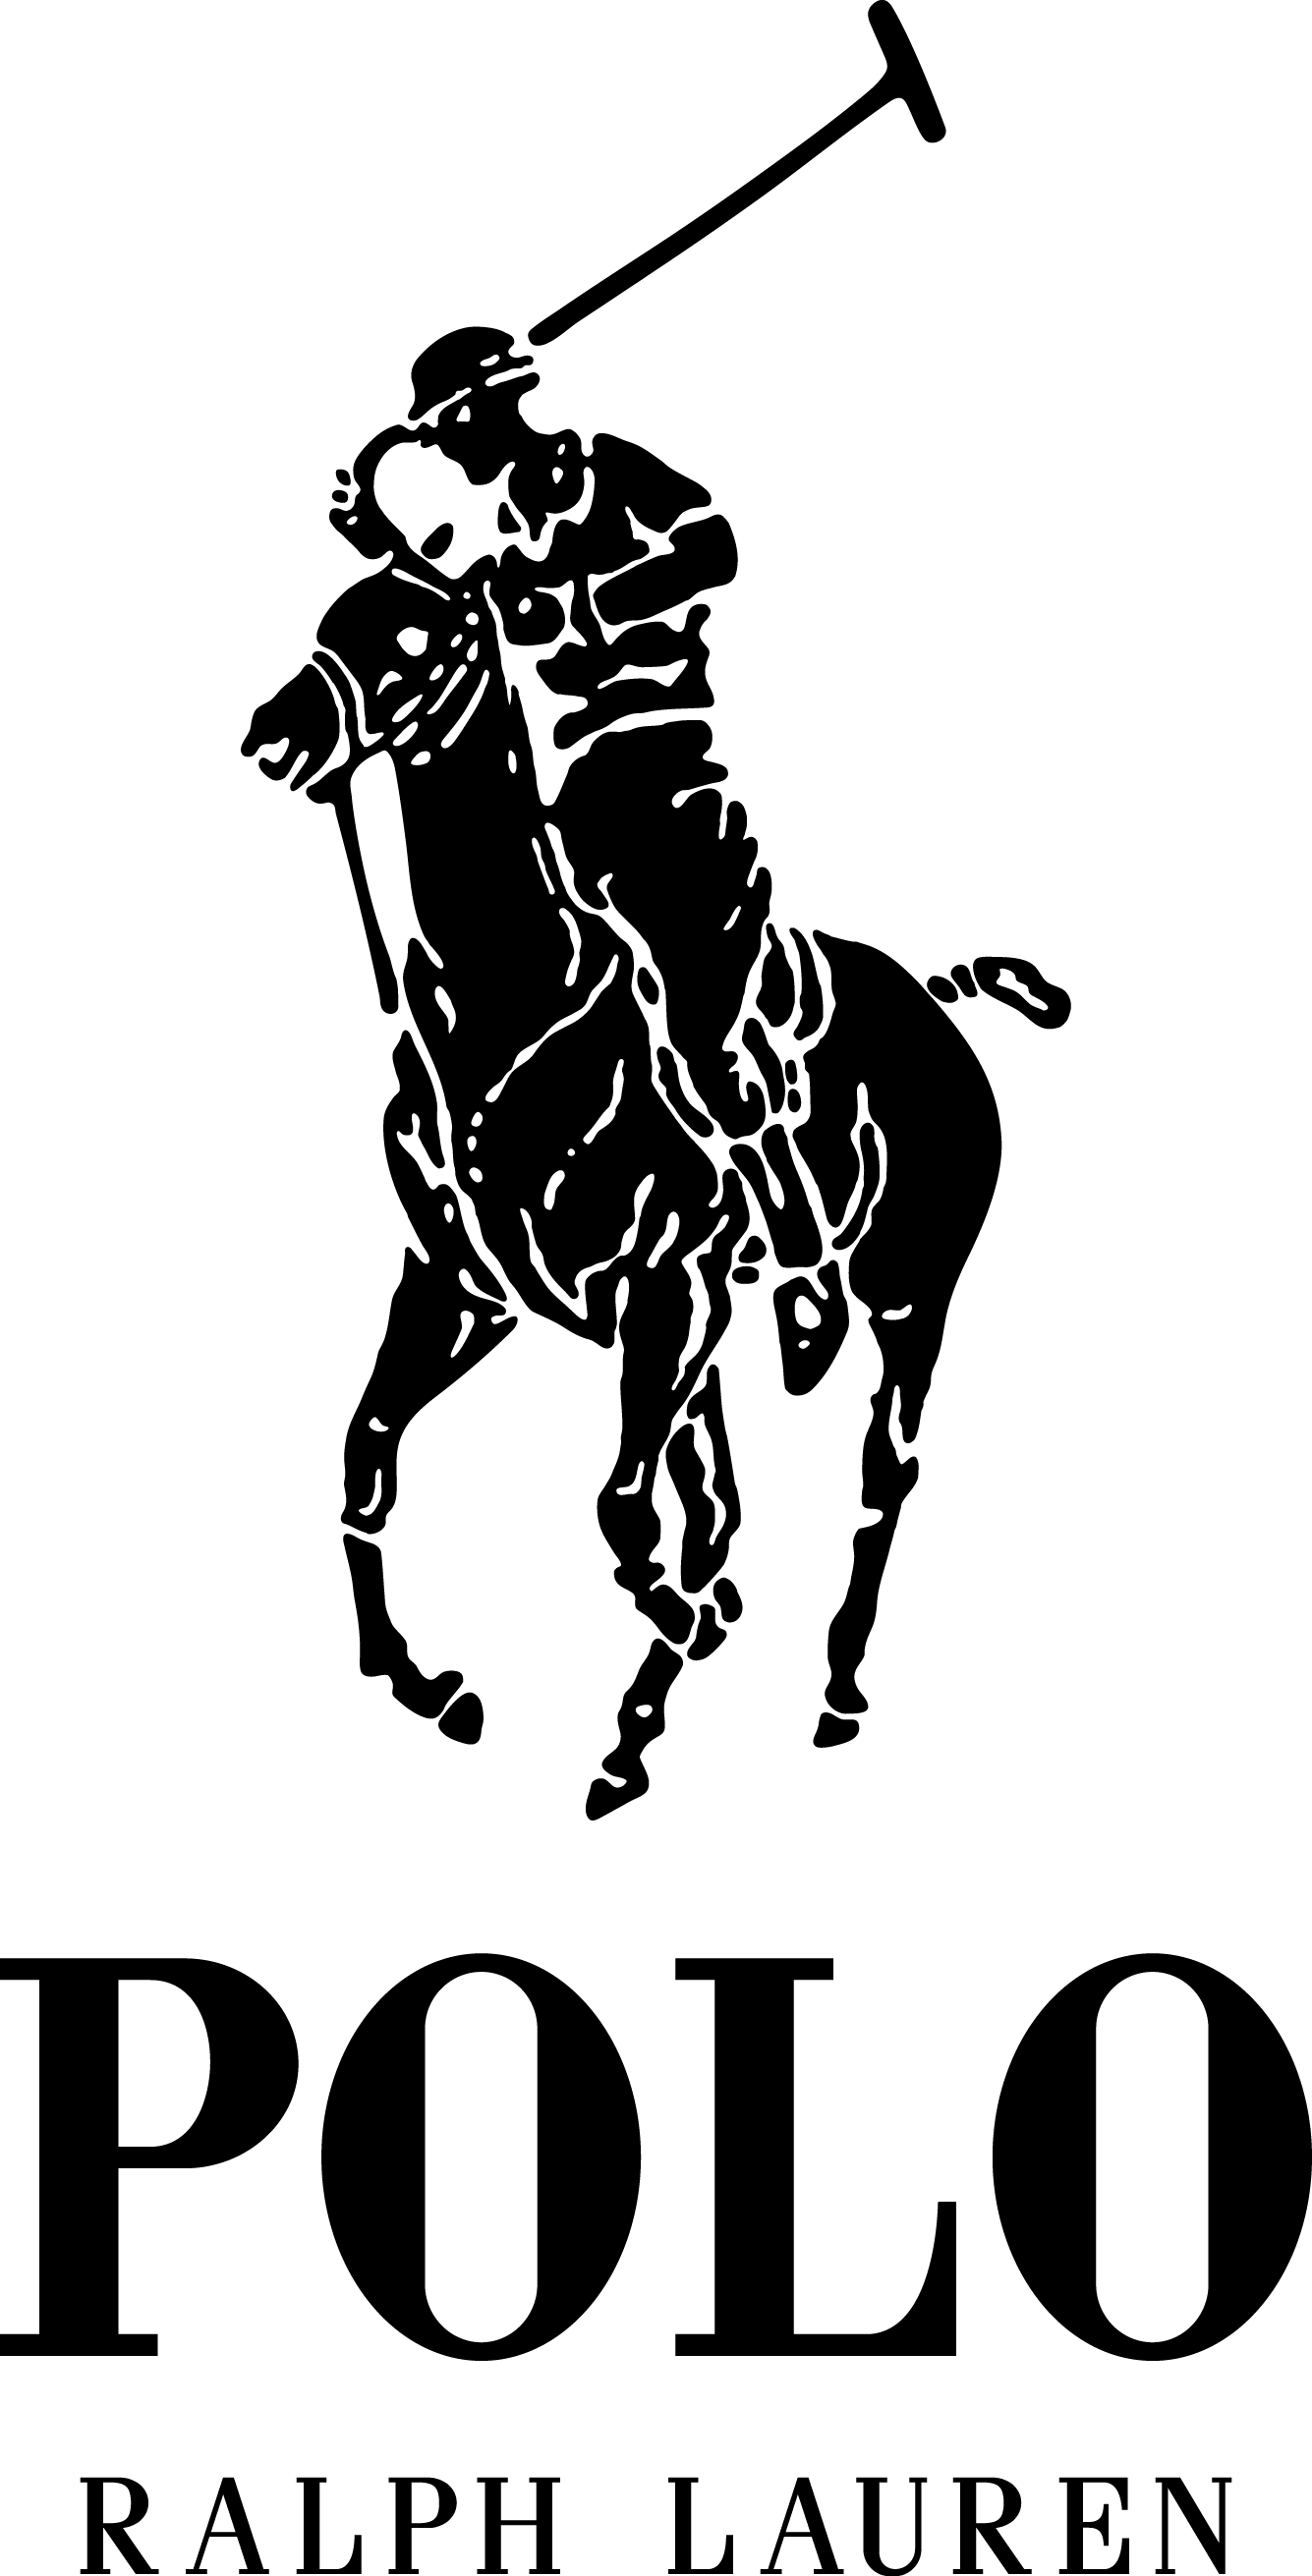 Polo Logo Wallpaper 1335x2622